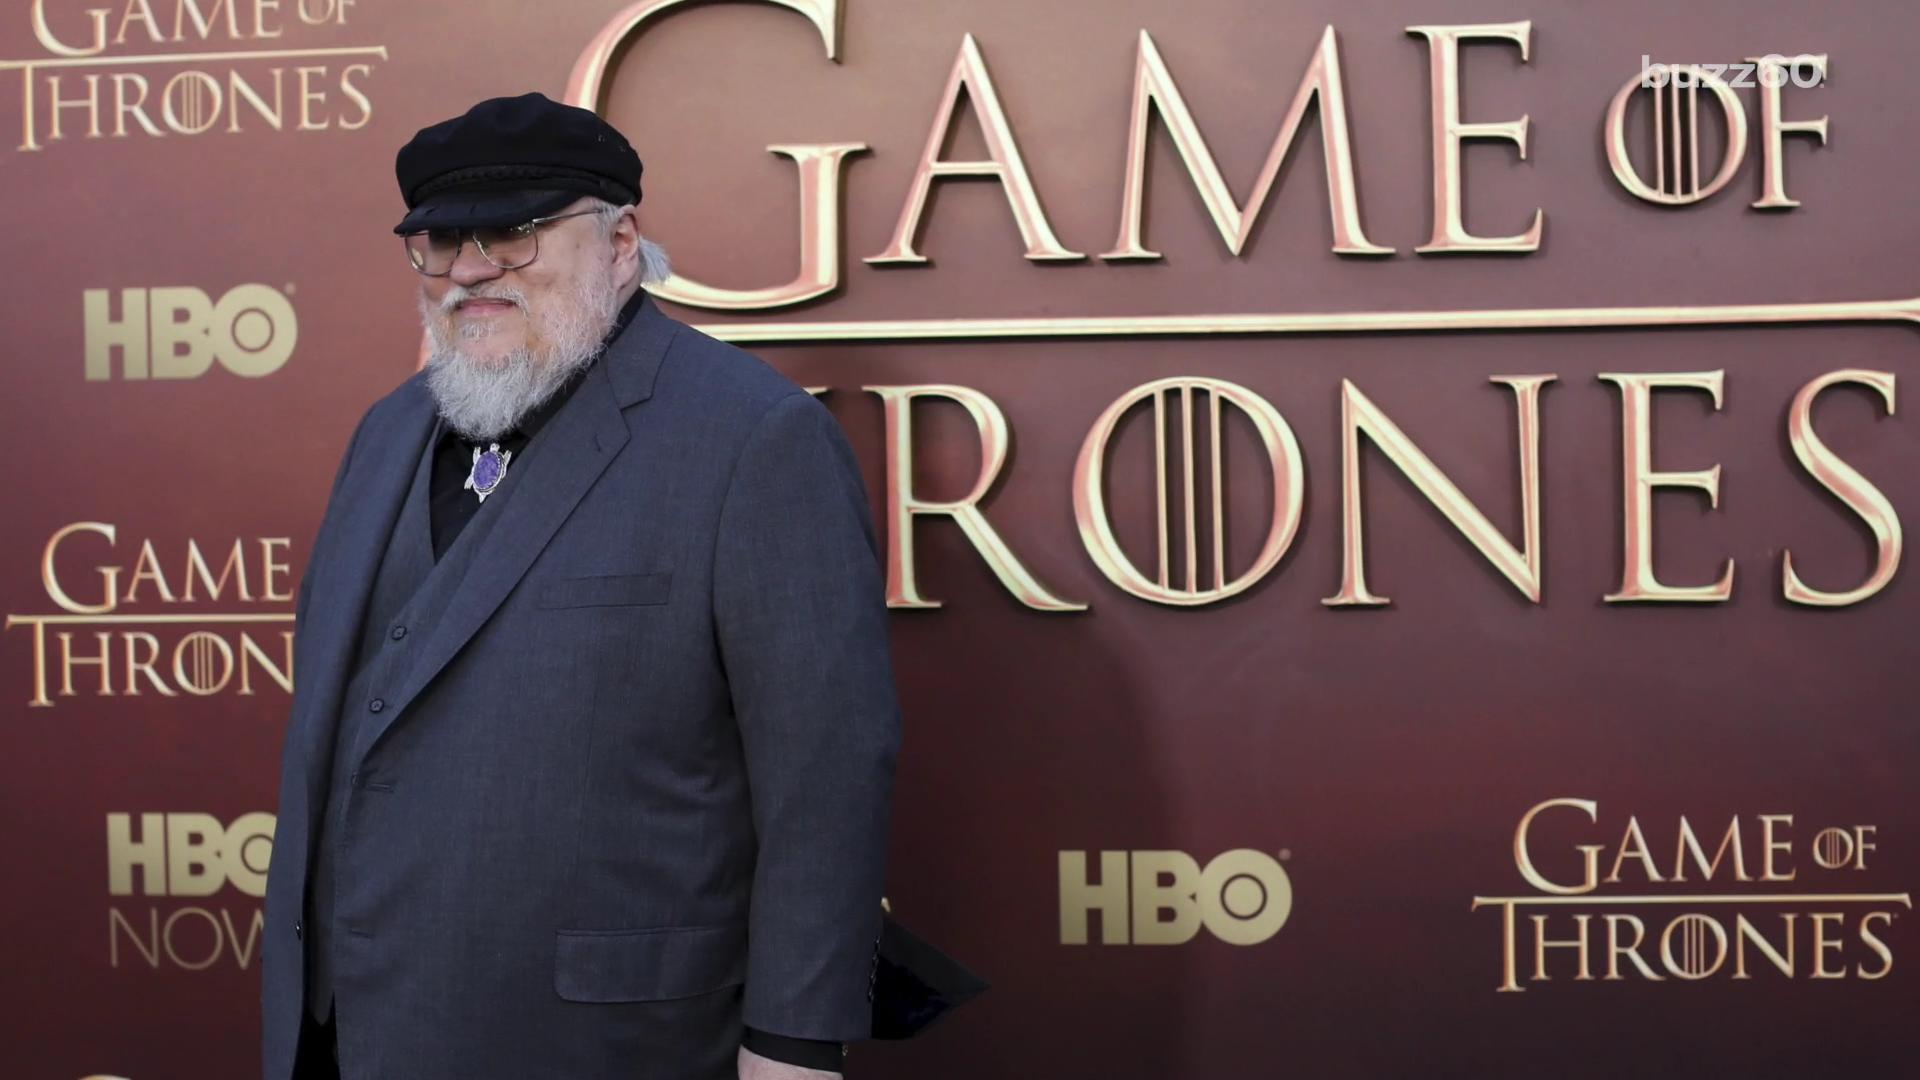 George R.R. Martin says no 'Game of Thrones' movie...yet